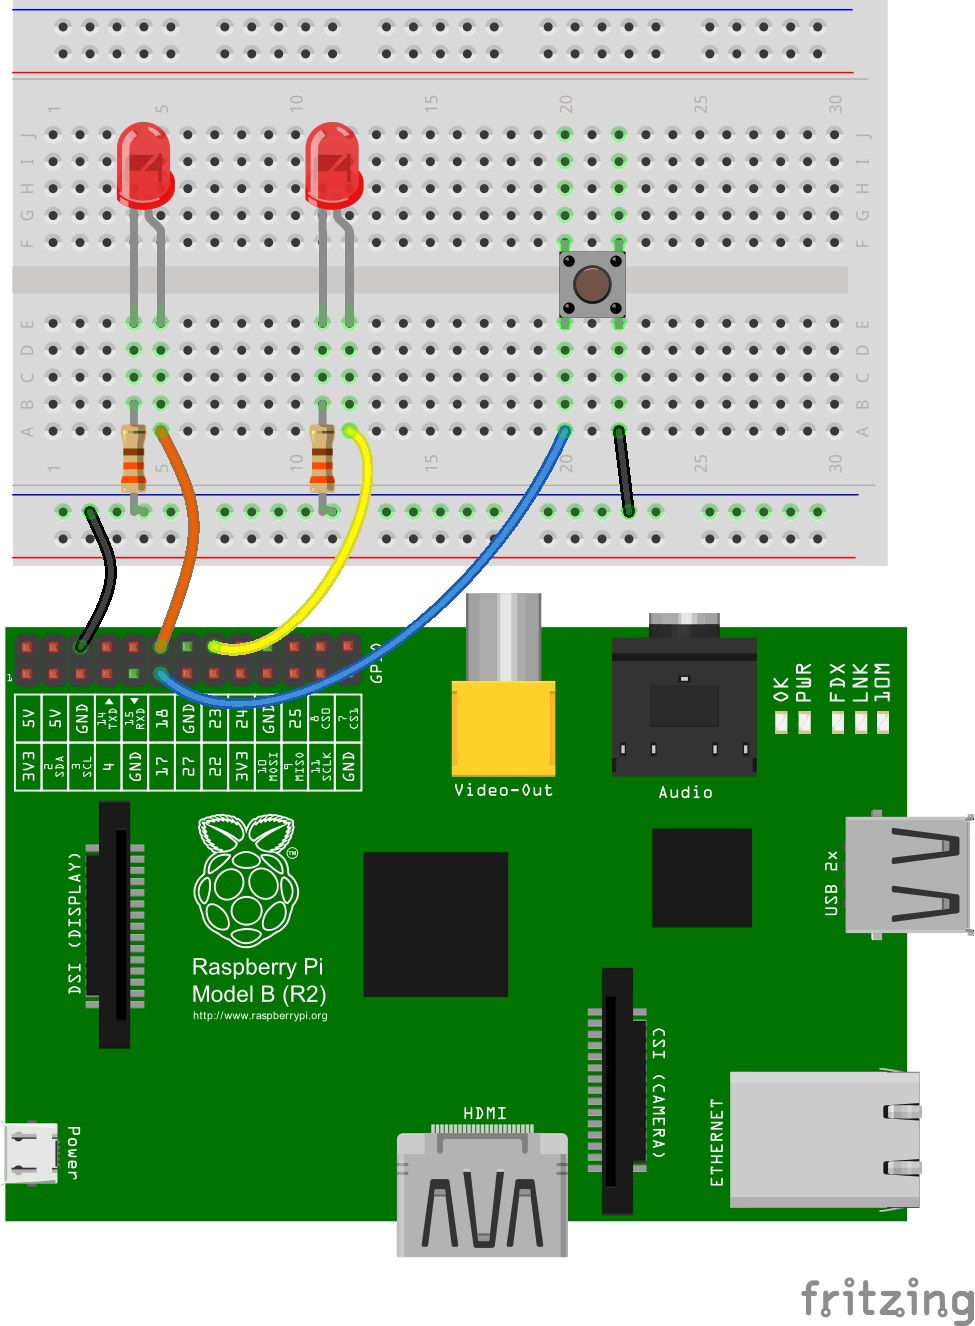 Raspberry Gpio Pi Relay Wiring Diagram Alt Text Connections To Original